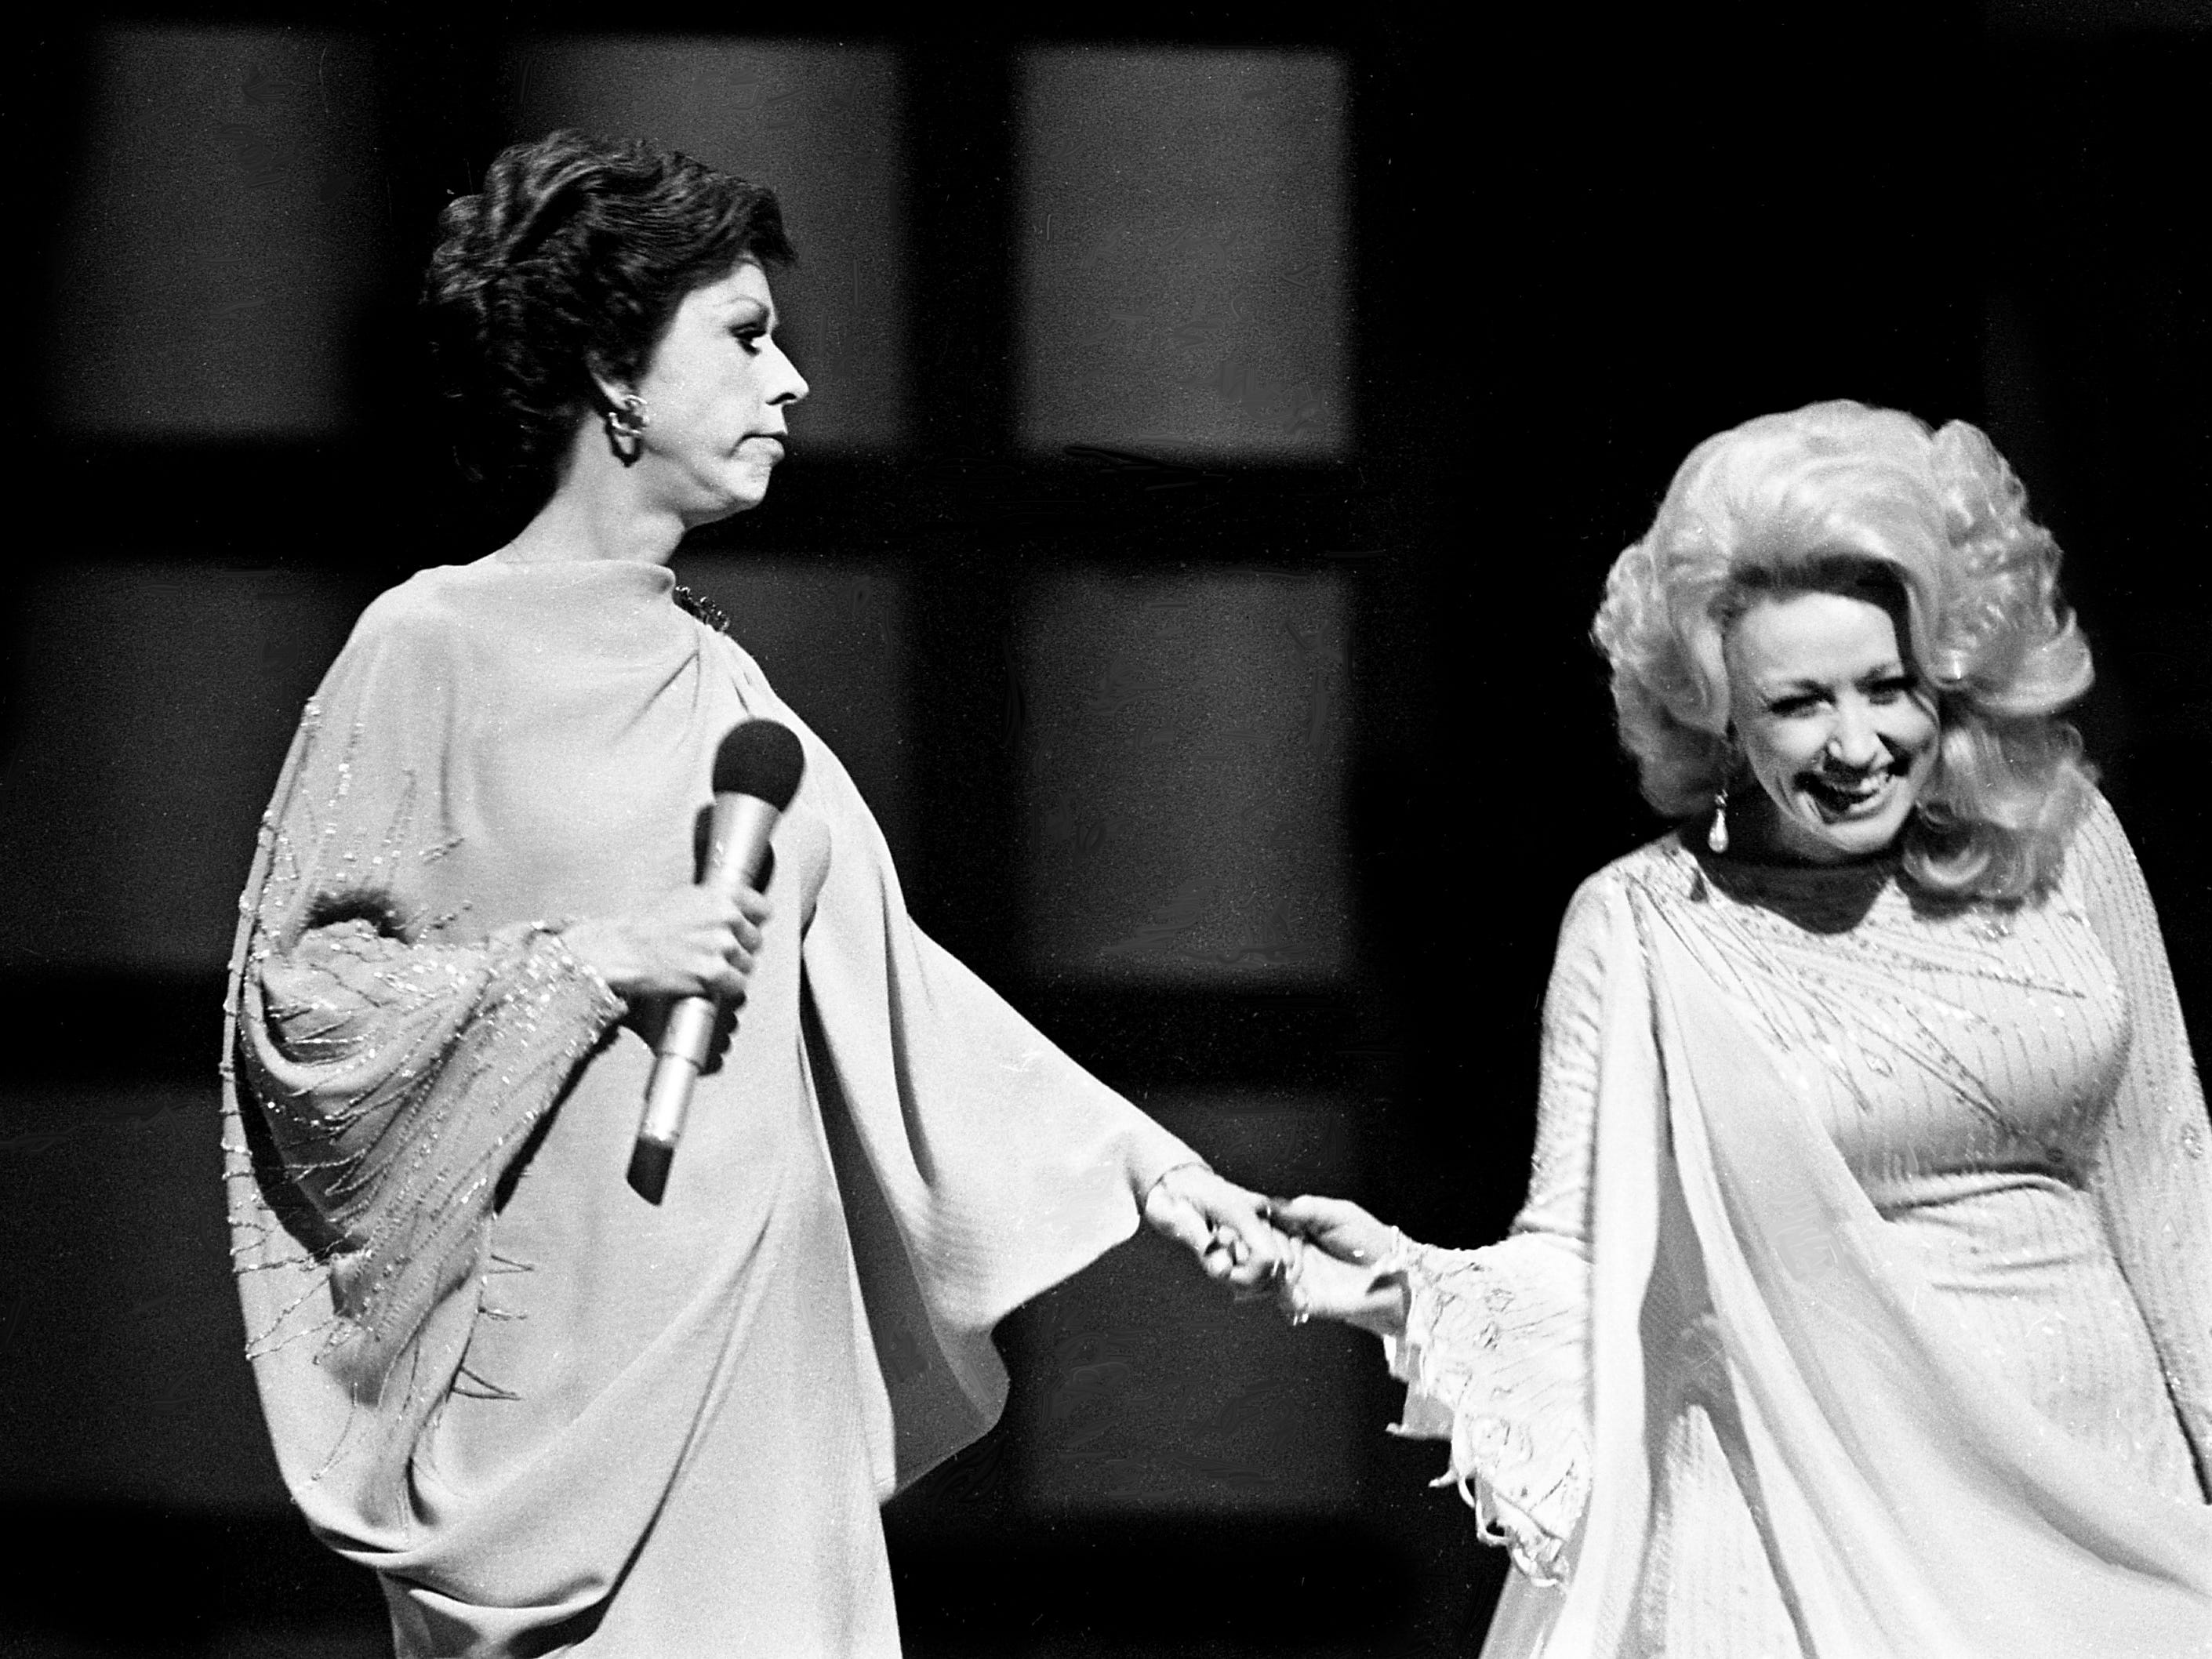 """Dolly Parton, right, joins Carol Burnett for the """"Pedestal Song"""" skit during the taping of the """"Dolly and Carol in Nashville"""" television special before a packed audience at the Grand Ole Opry House Jan. 10, 1979. The special airs on CBS Feb. 14."""